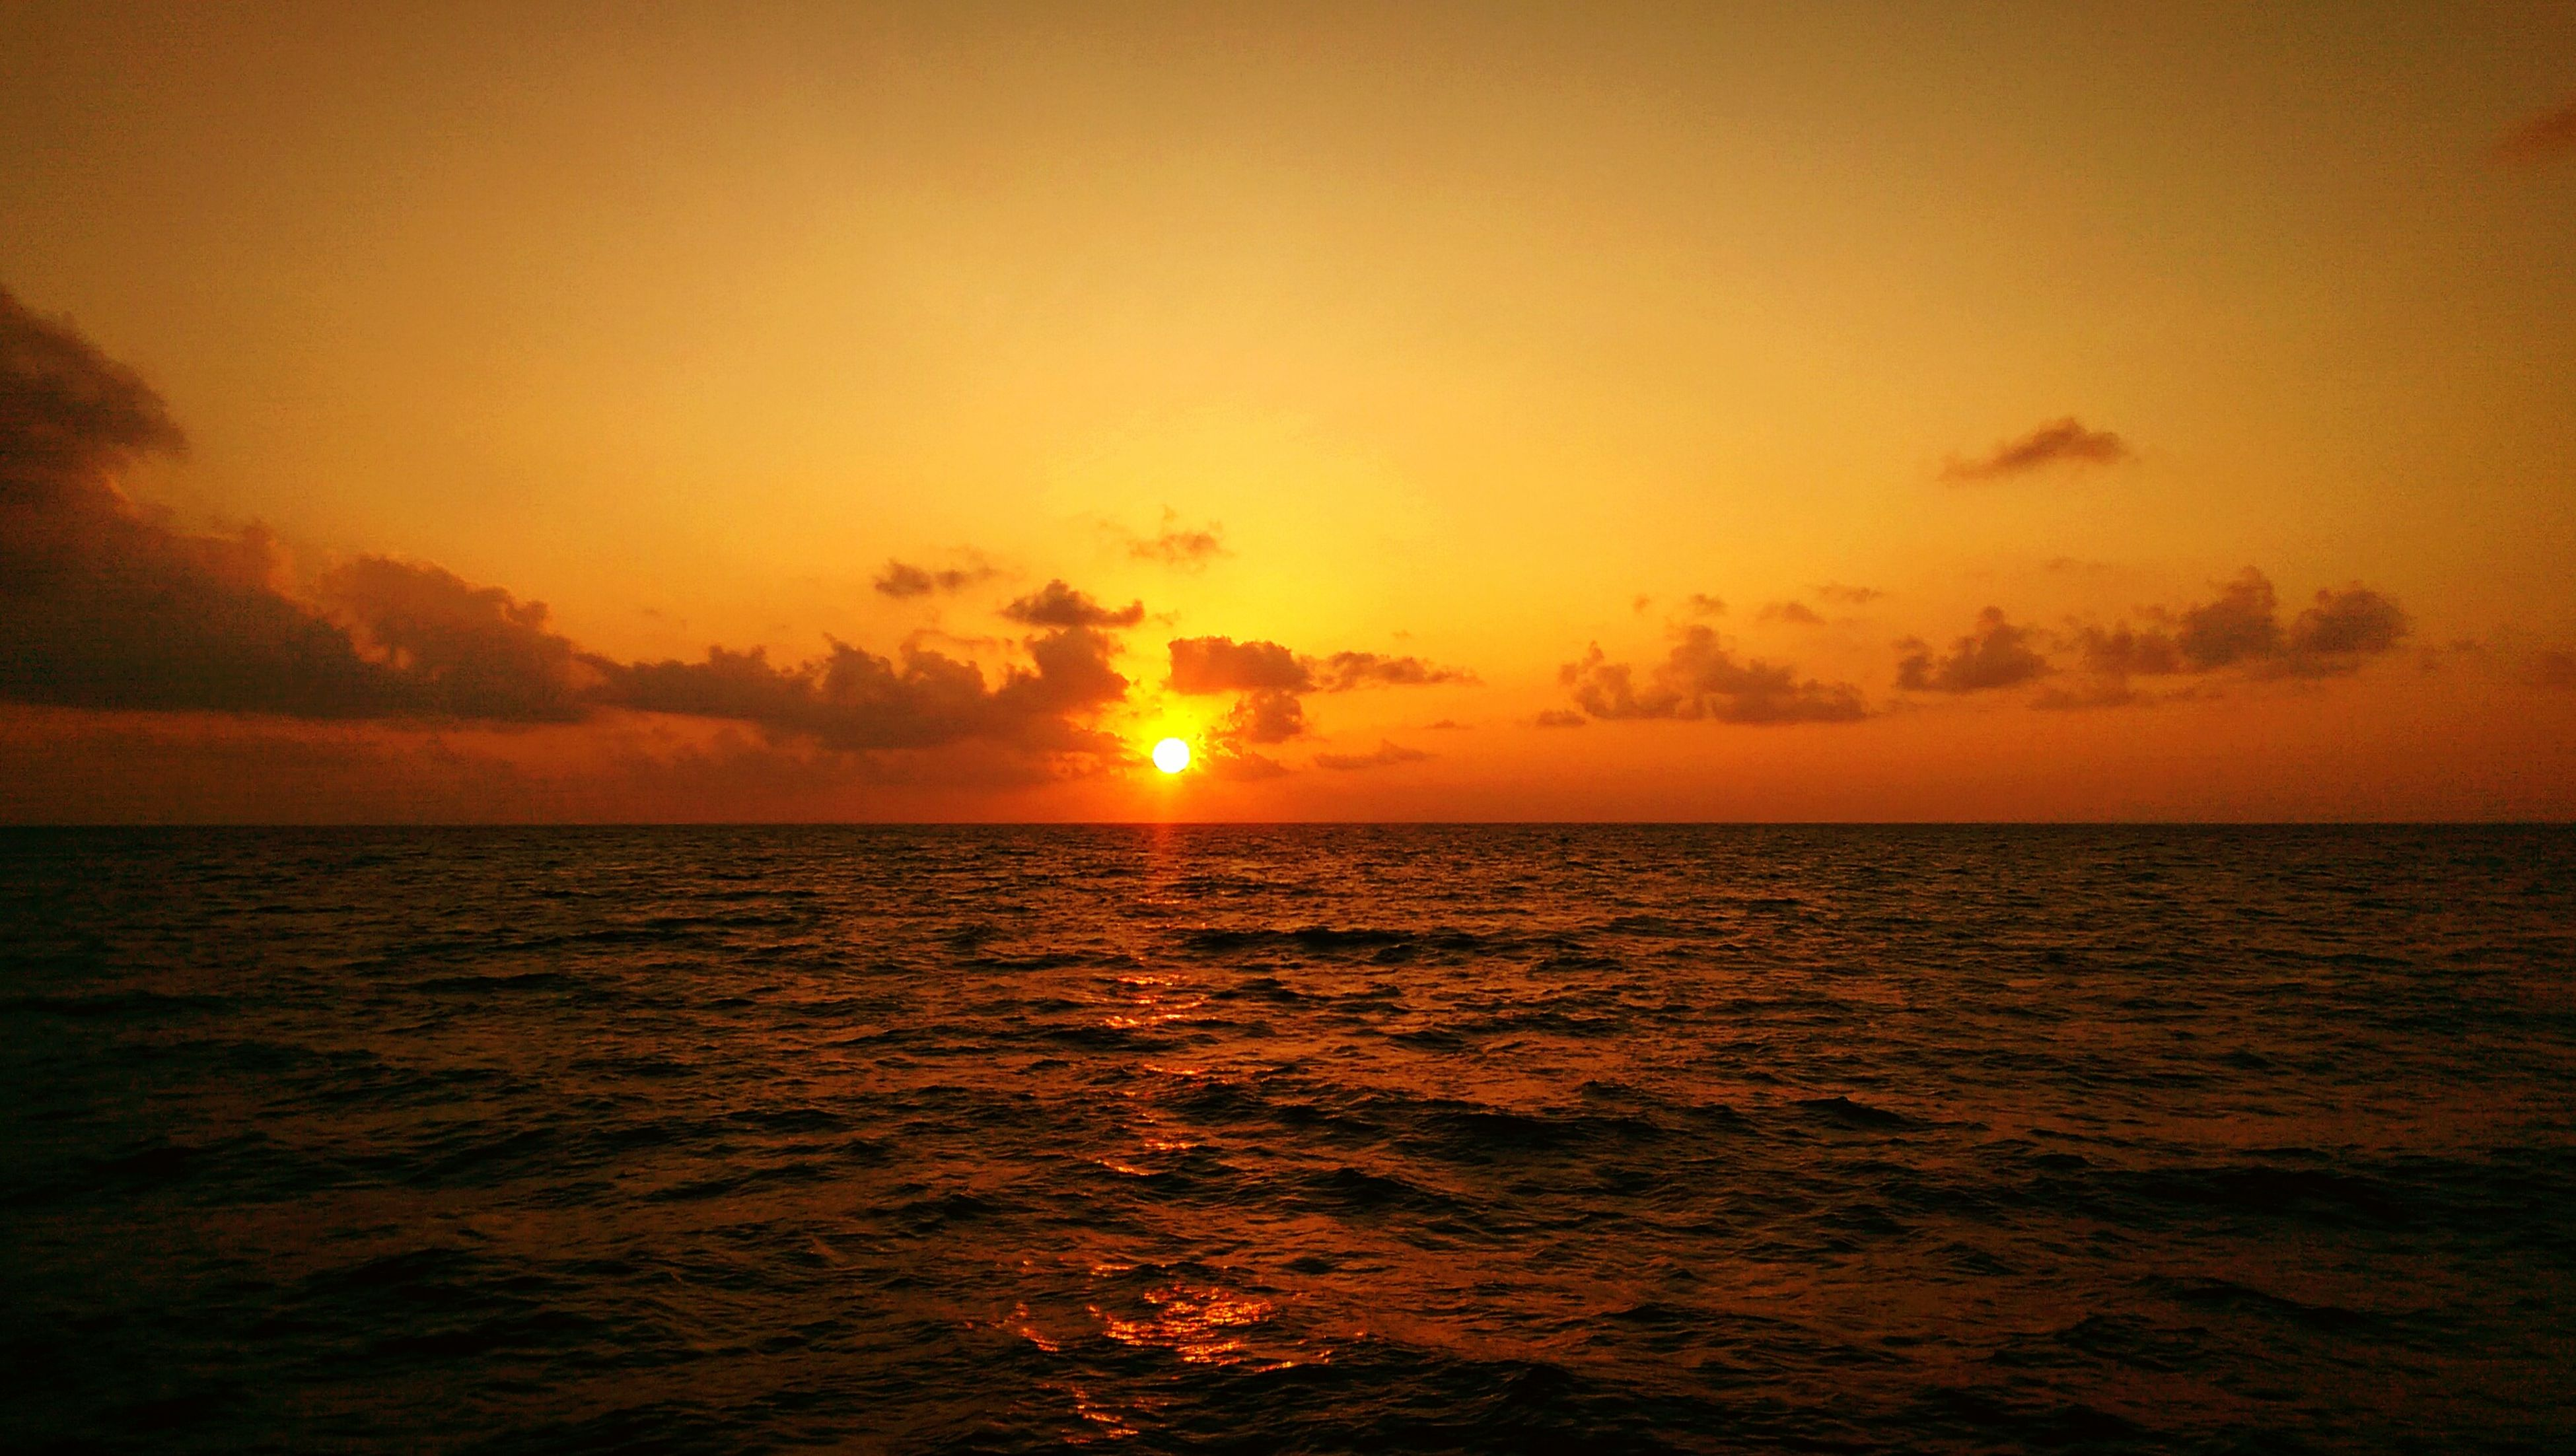 sunset, sea, water, scenics, horizon over water, sun, tranquil scene, beauty in nature, orange color, tranquility, sky, idyllic, waterfront, nature, reflection, rippled, seascape, sunlight, cloud - sky, outdoors